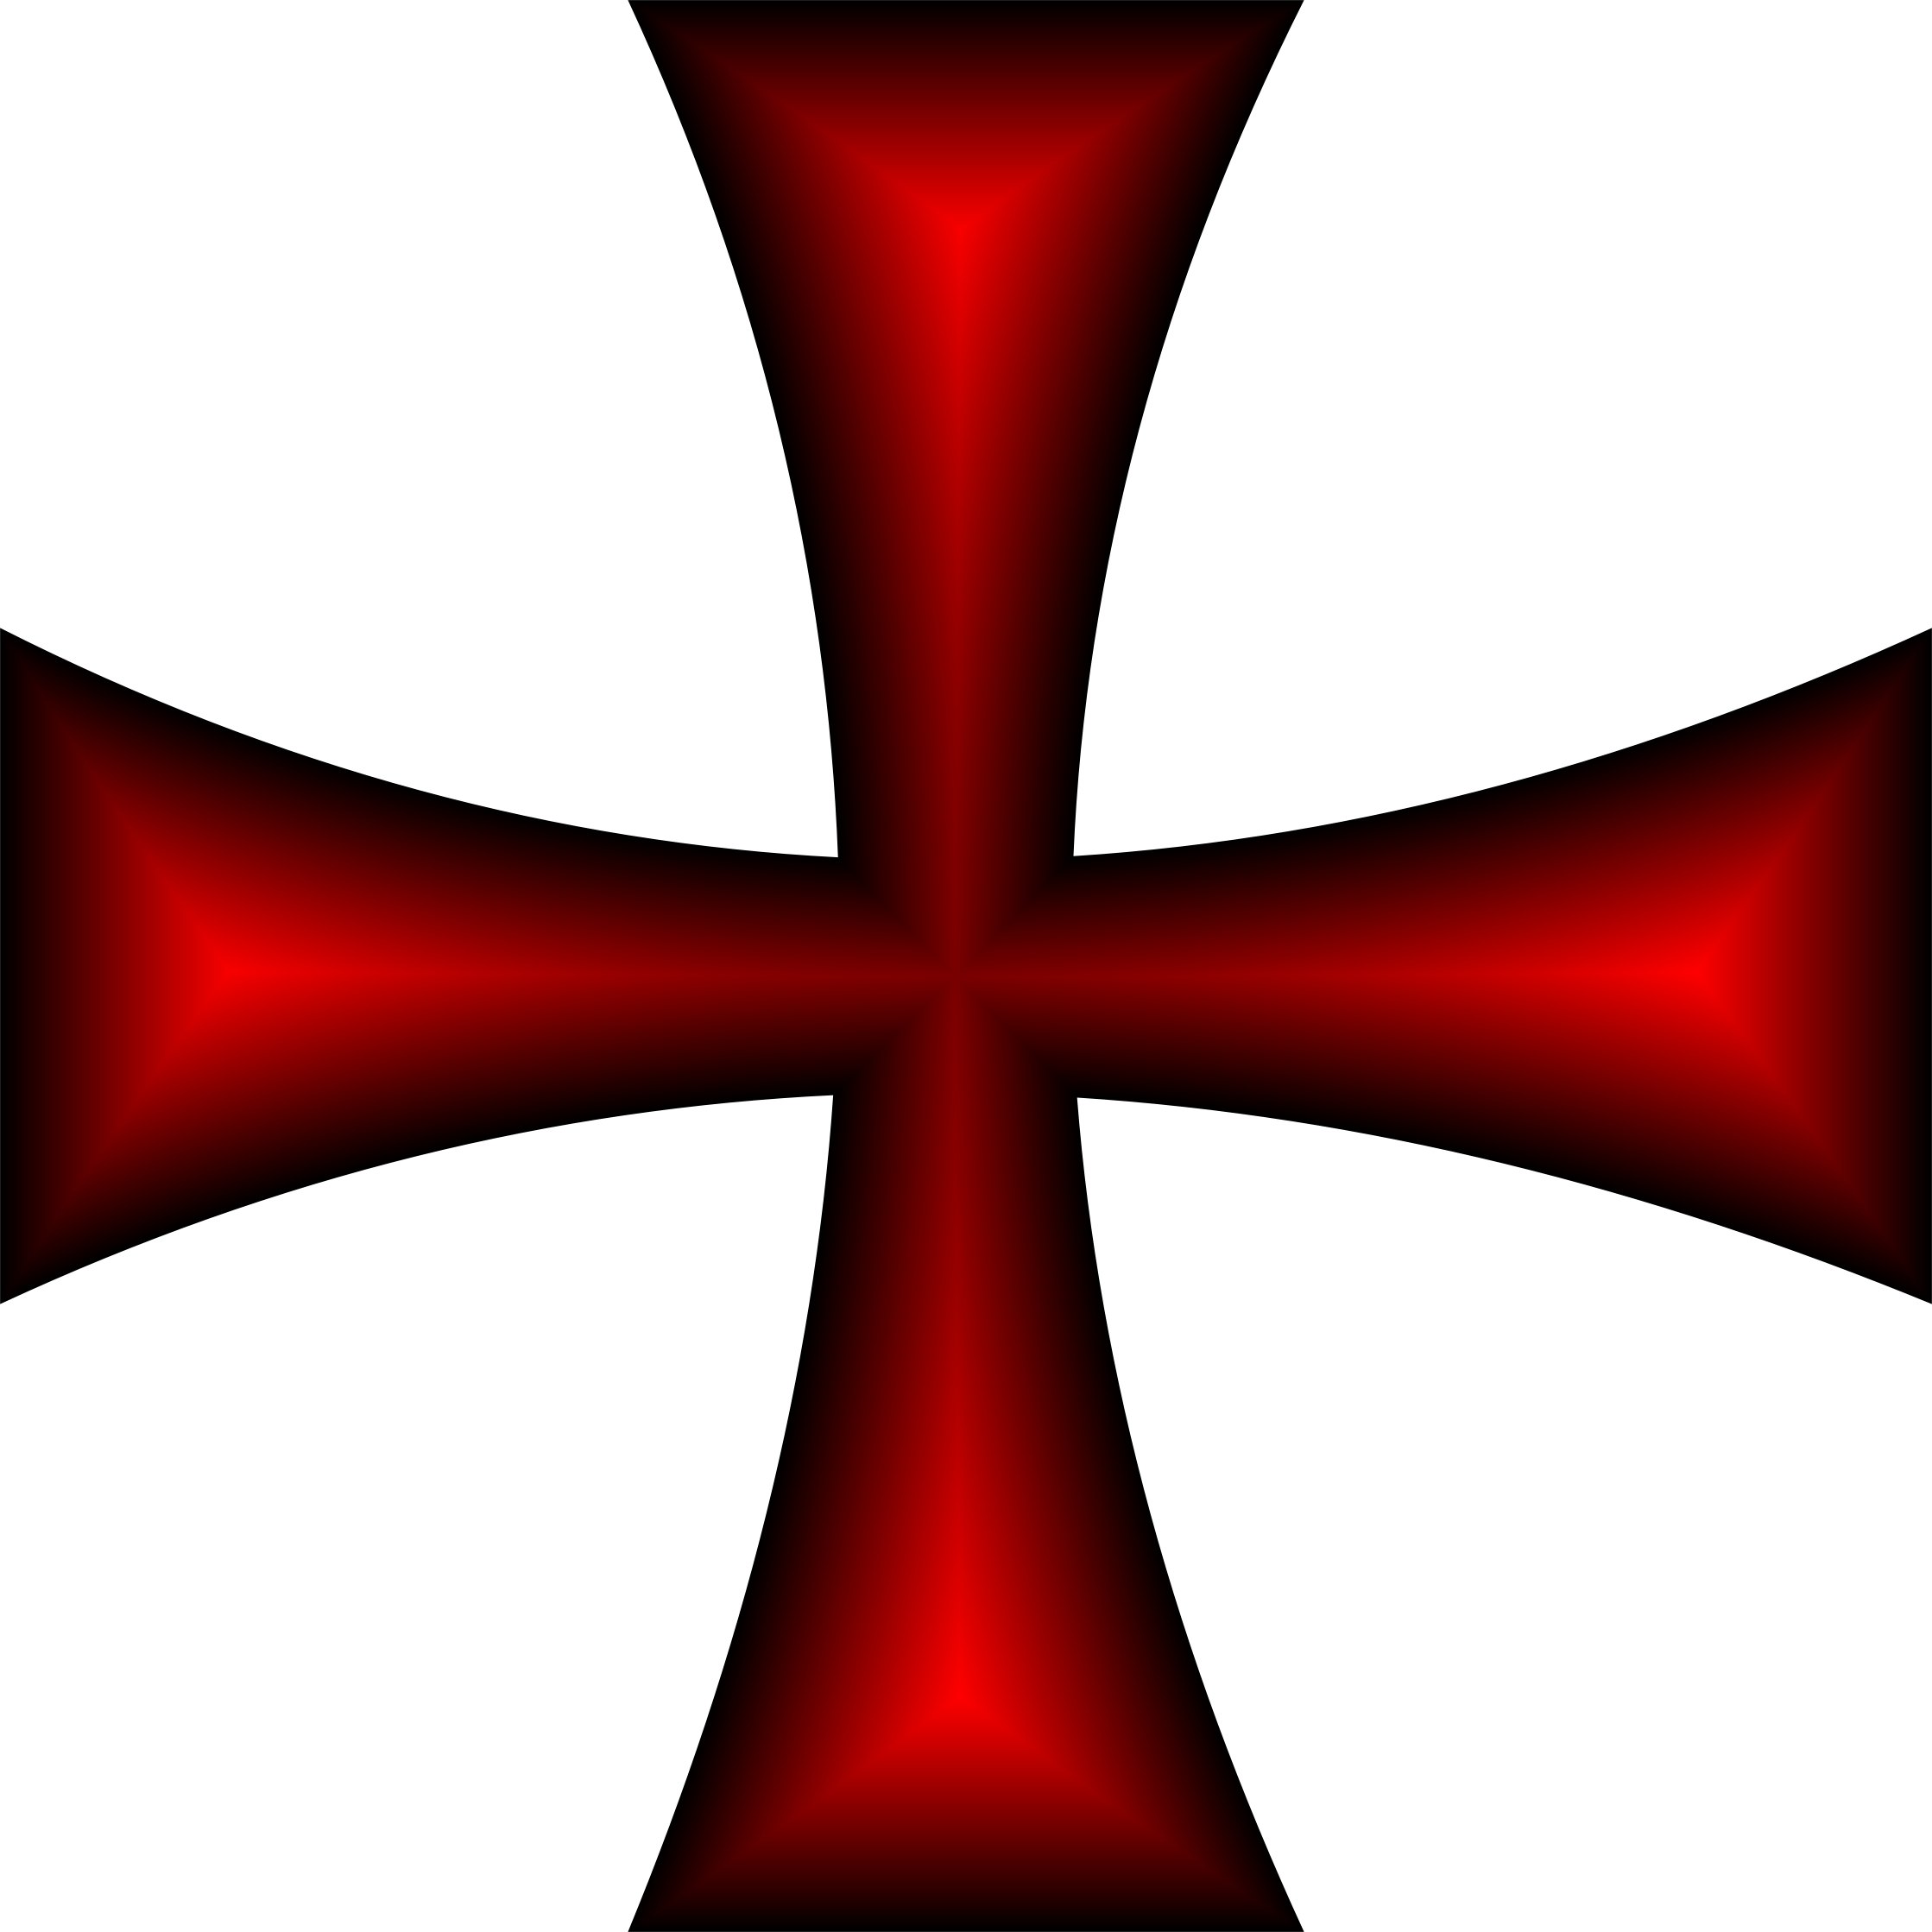 Maltese cross png. Red icons free and